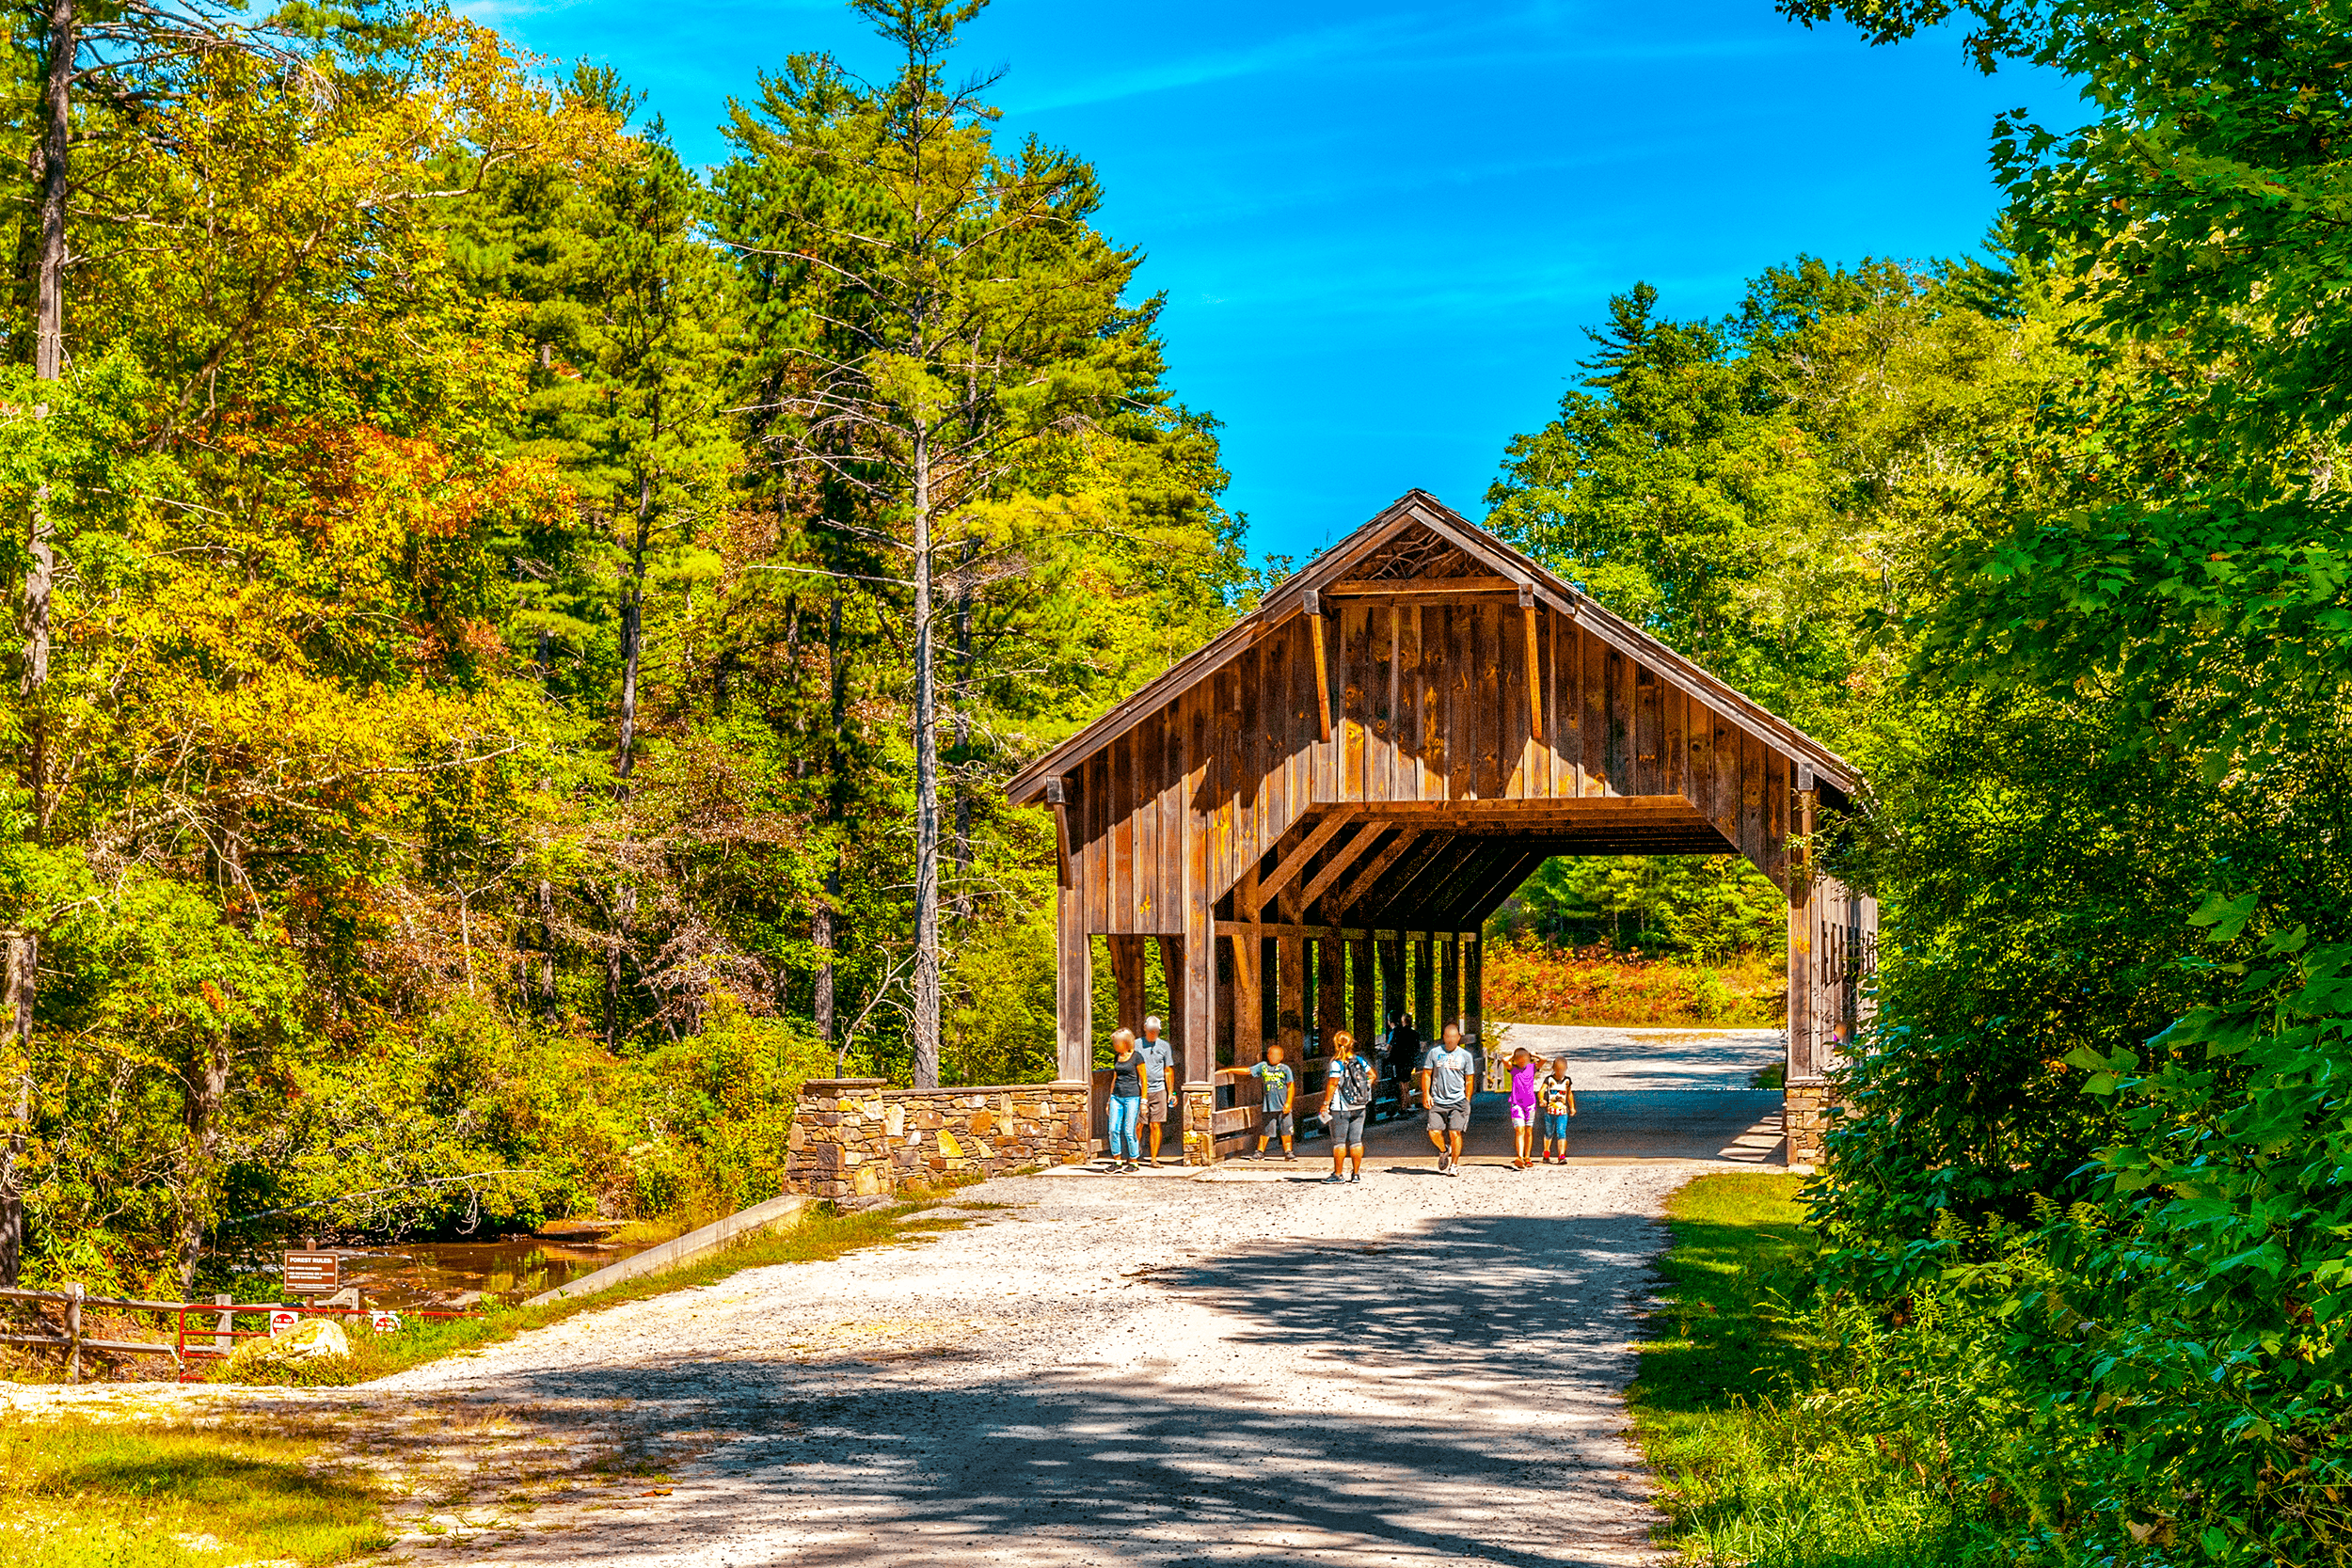 The forest road going over the  Wooden Bridge  connects back to the  Visitor Center .